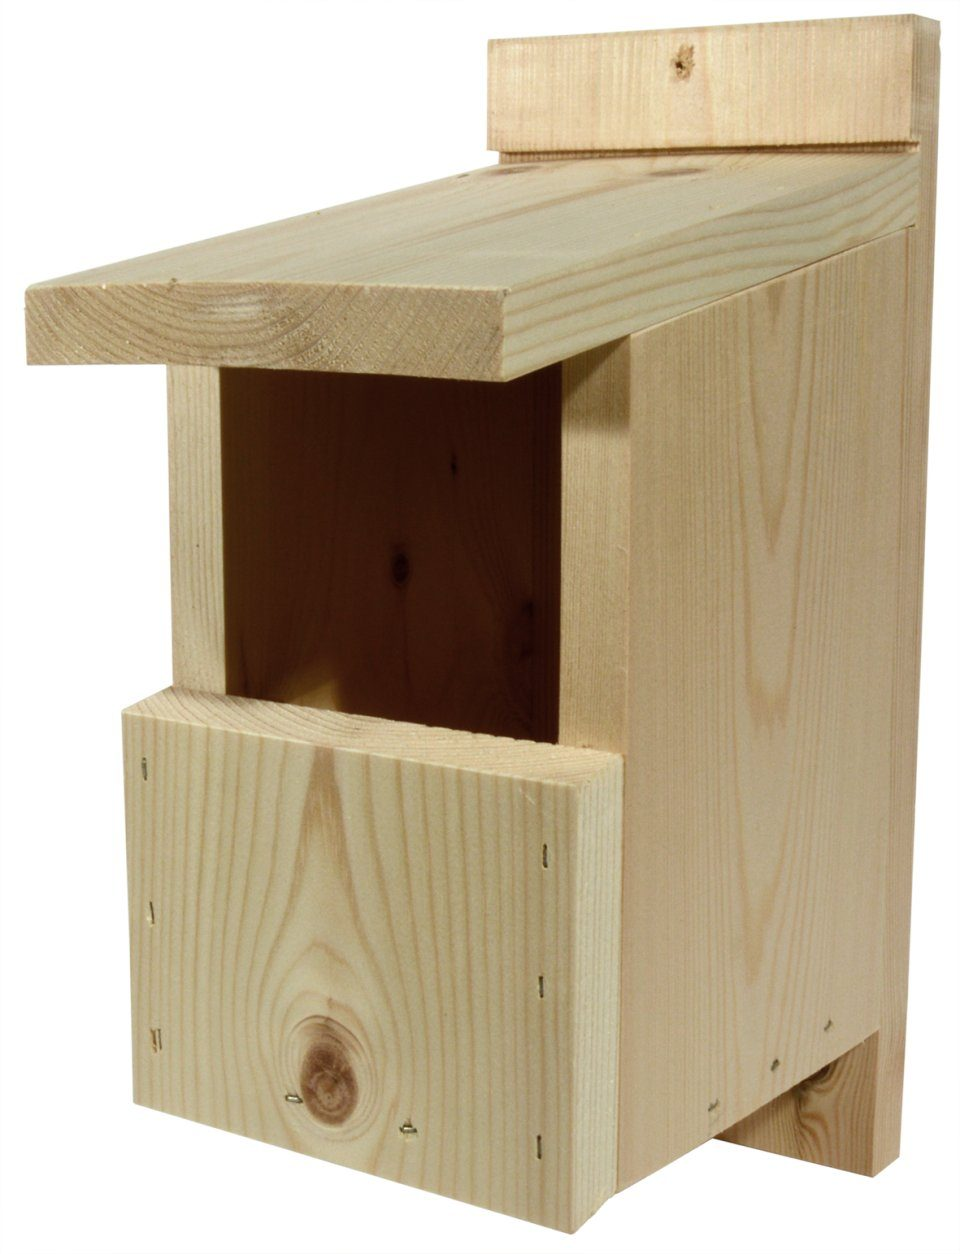 Other Bird Supplies Bird Supplies Three Birdhouse Bird Nest Breeding Box Wildlife World